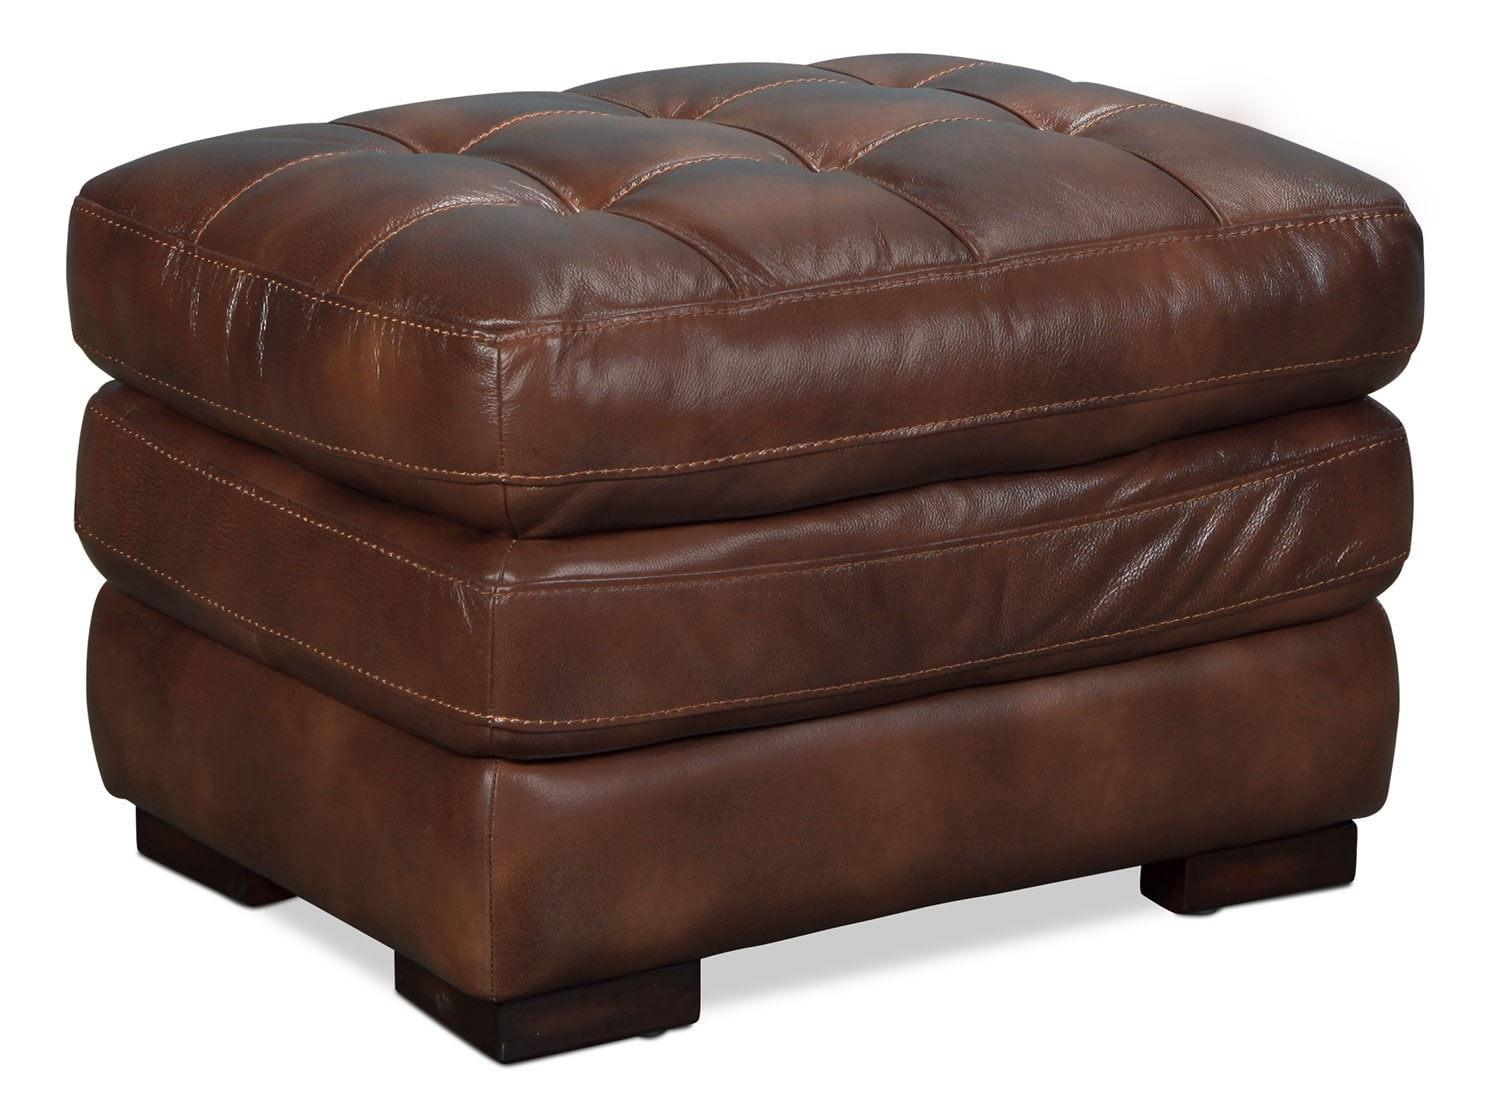 Living Room Furniture - Ashton Ottoman - Brown